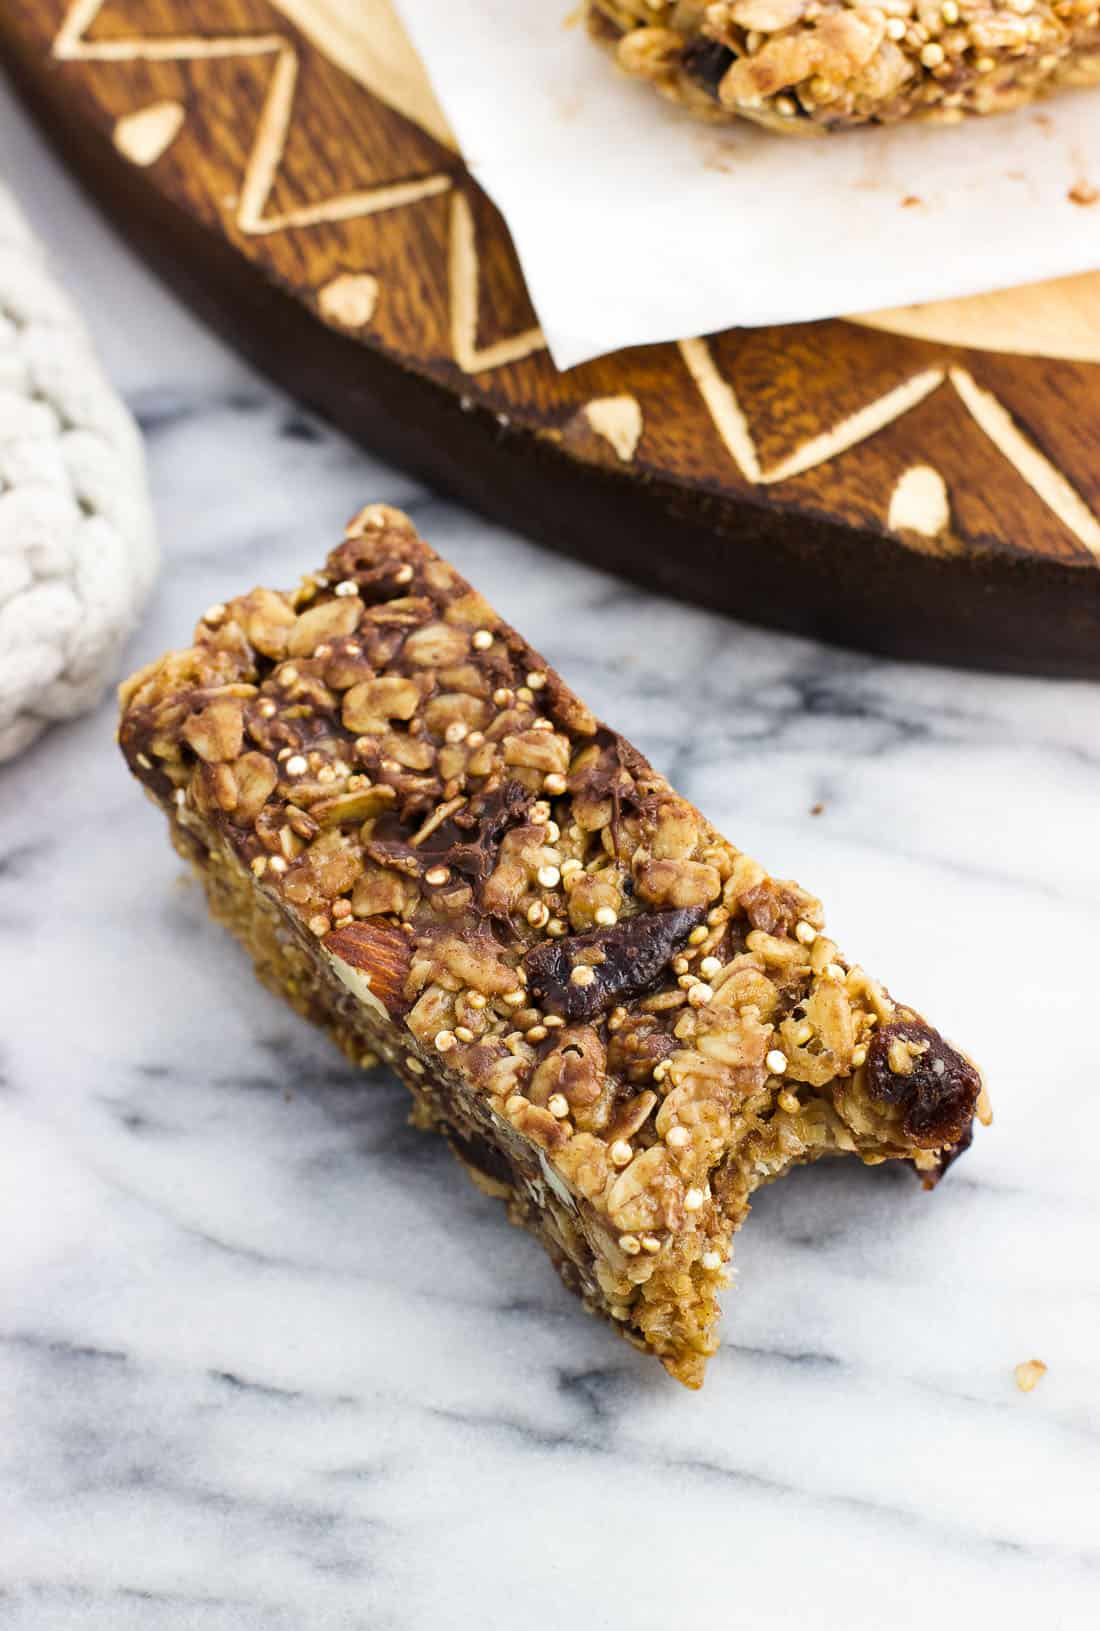 Cherry chocolate chip granola bars are LOADED with nutritious and filling ingredients making them an awesome, healthy snack recipe.  These chewy granola bars feature almond butter, honey, quinoa, dried cherries, oats, and almonds for a deliciously jam-packed snack.